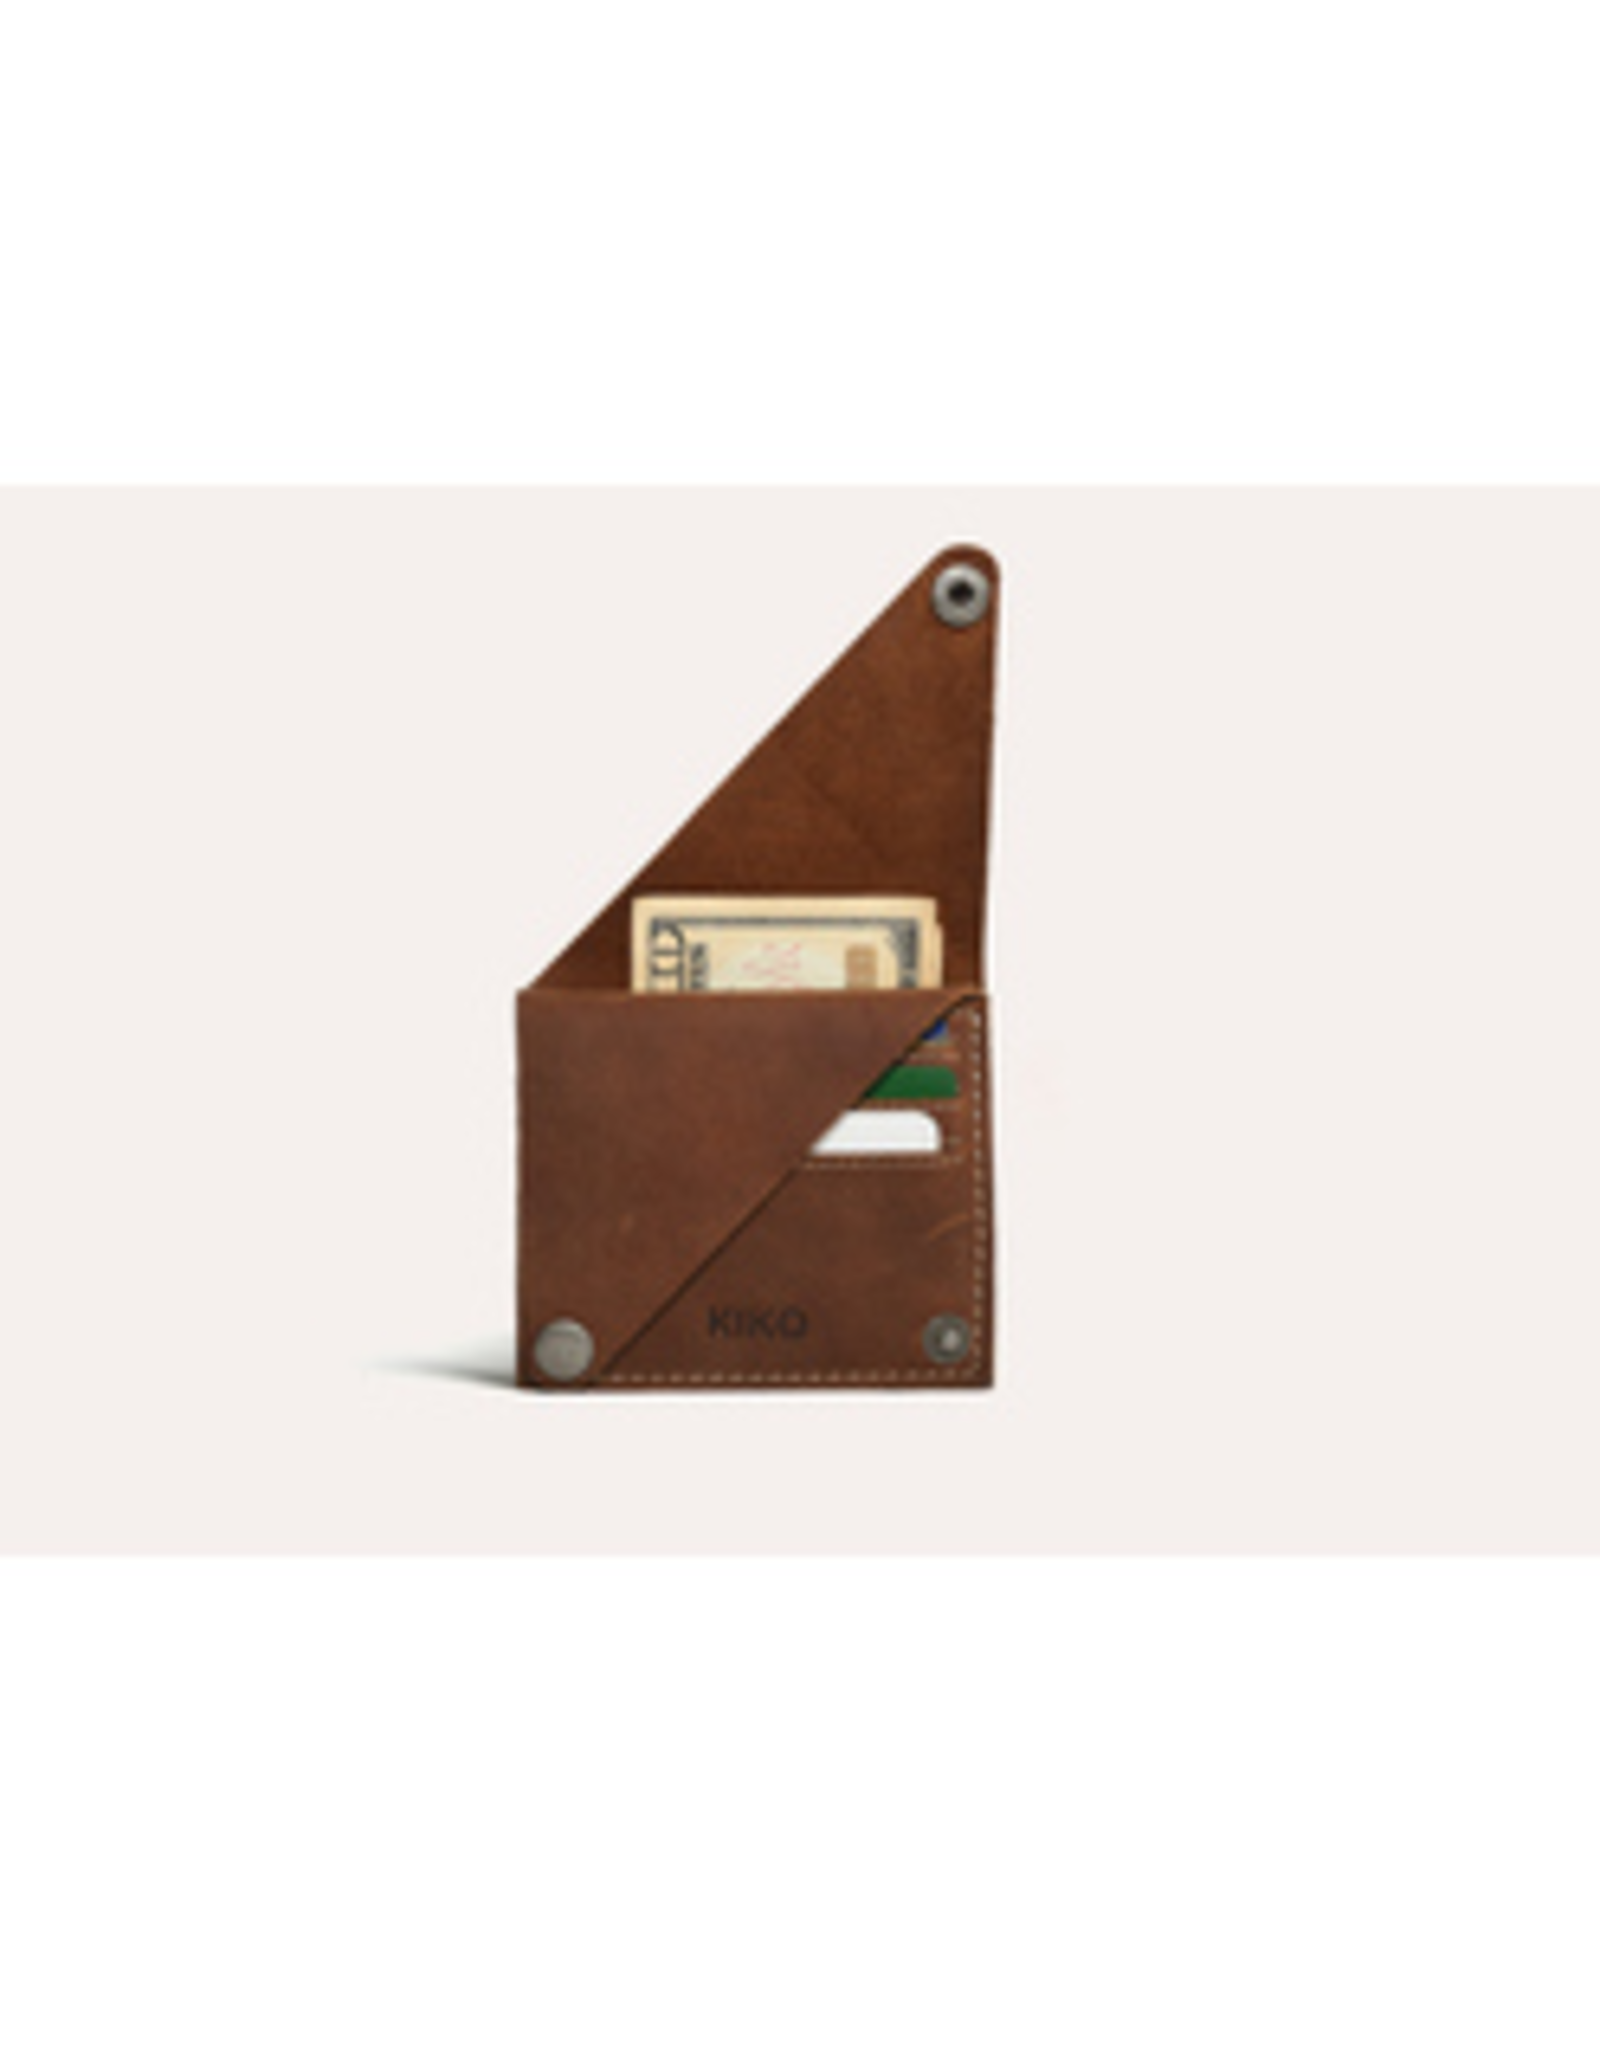 WALLET-WING FOLD CARD CASE, LEATHER, BROWN